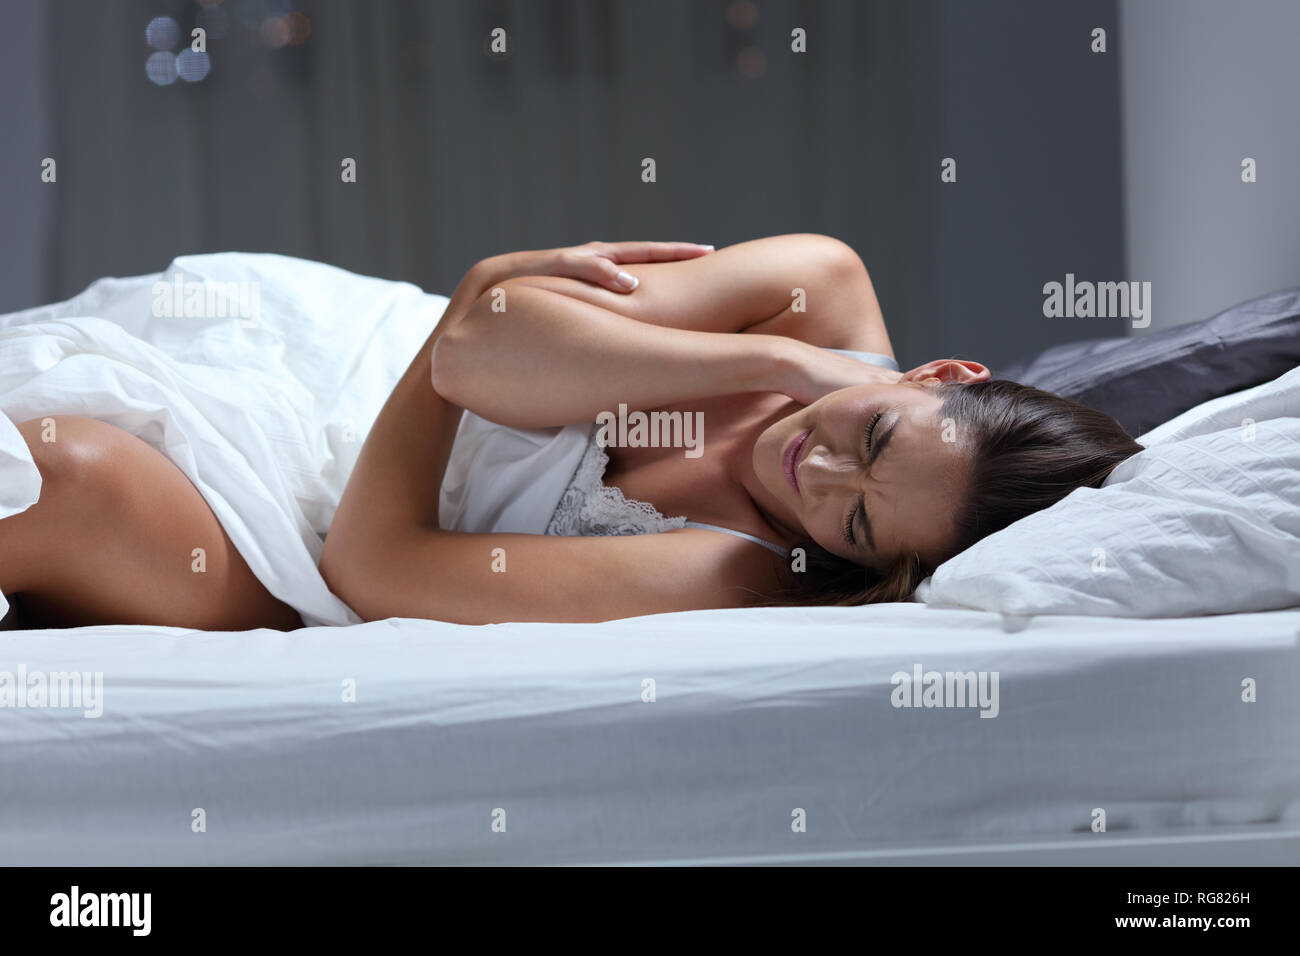 Woman complaining suffering neck ache sleeping with a bad pillow on a bed at home - Stock Image